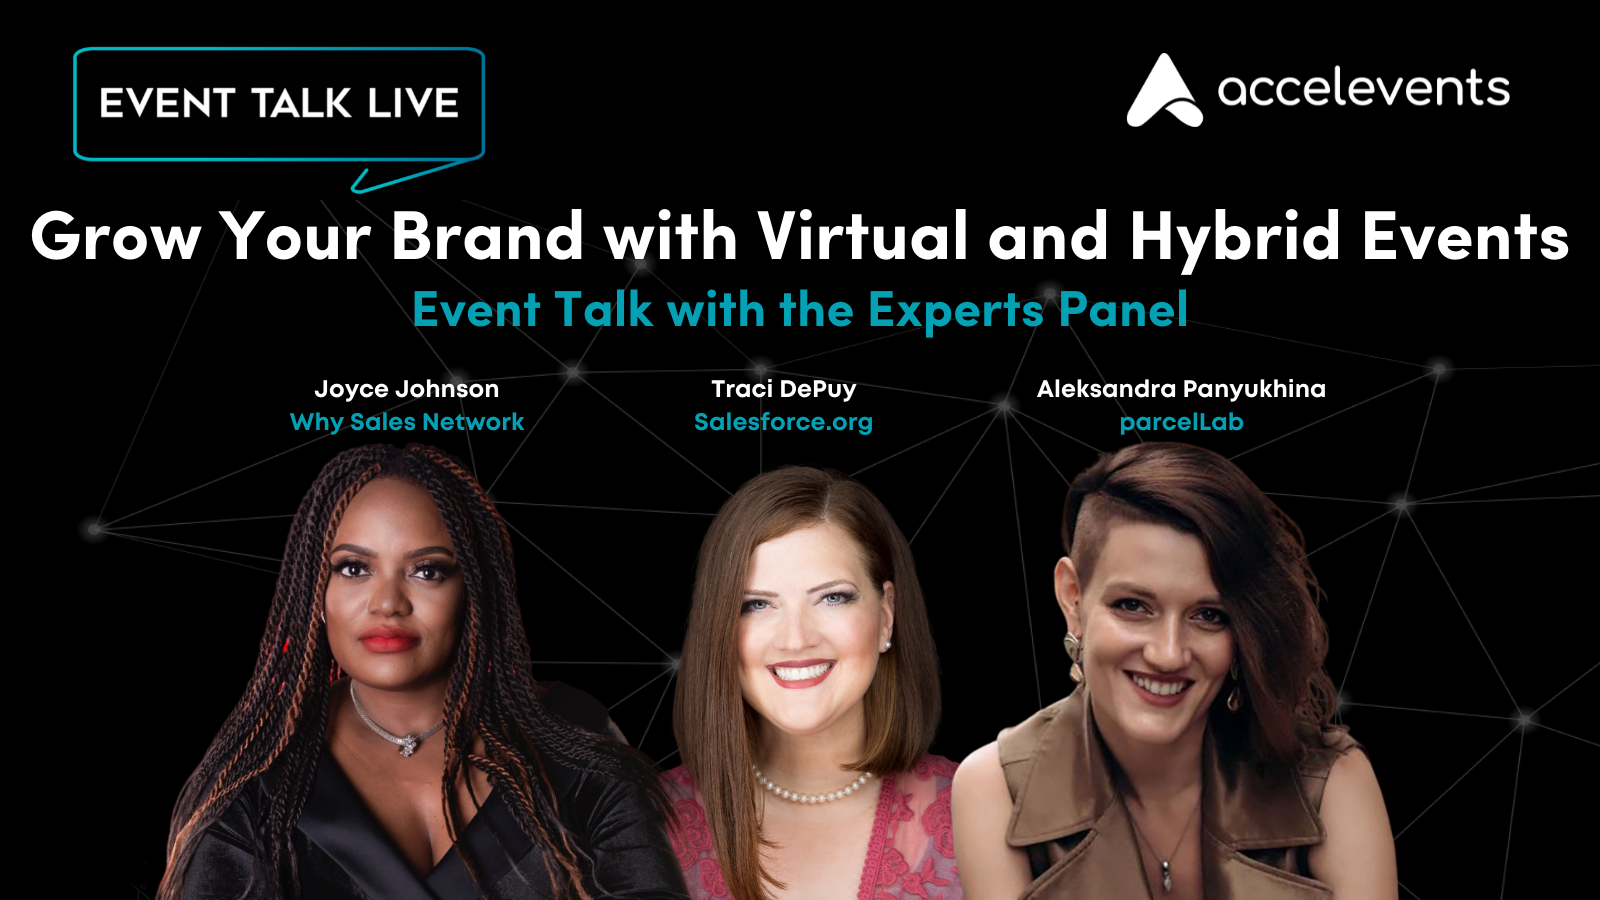 Event Talk Live Grow Your Brand